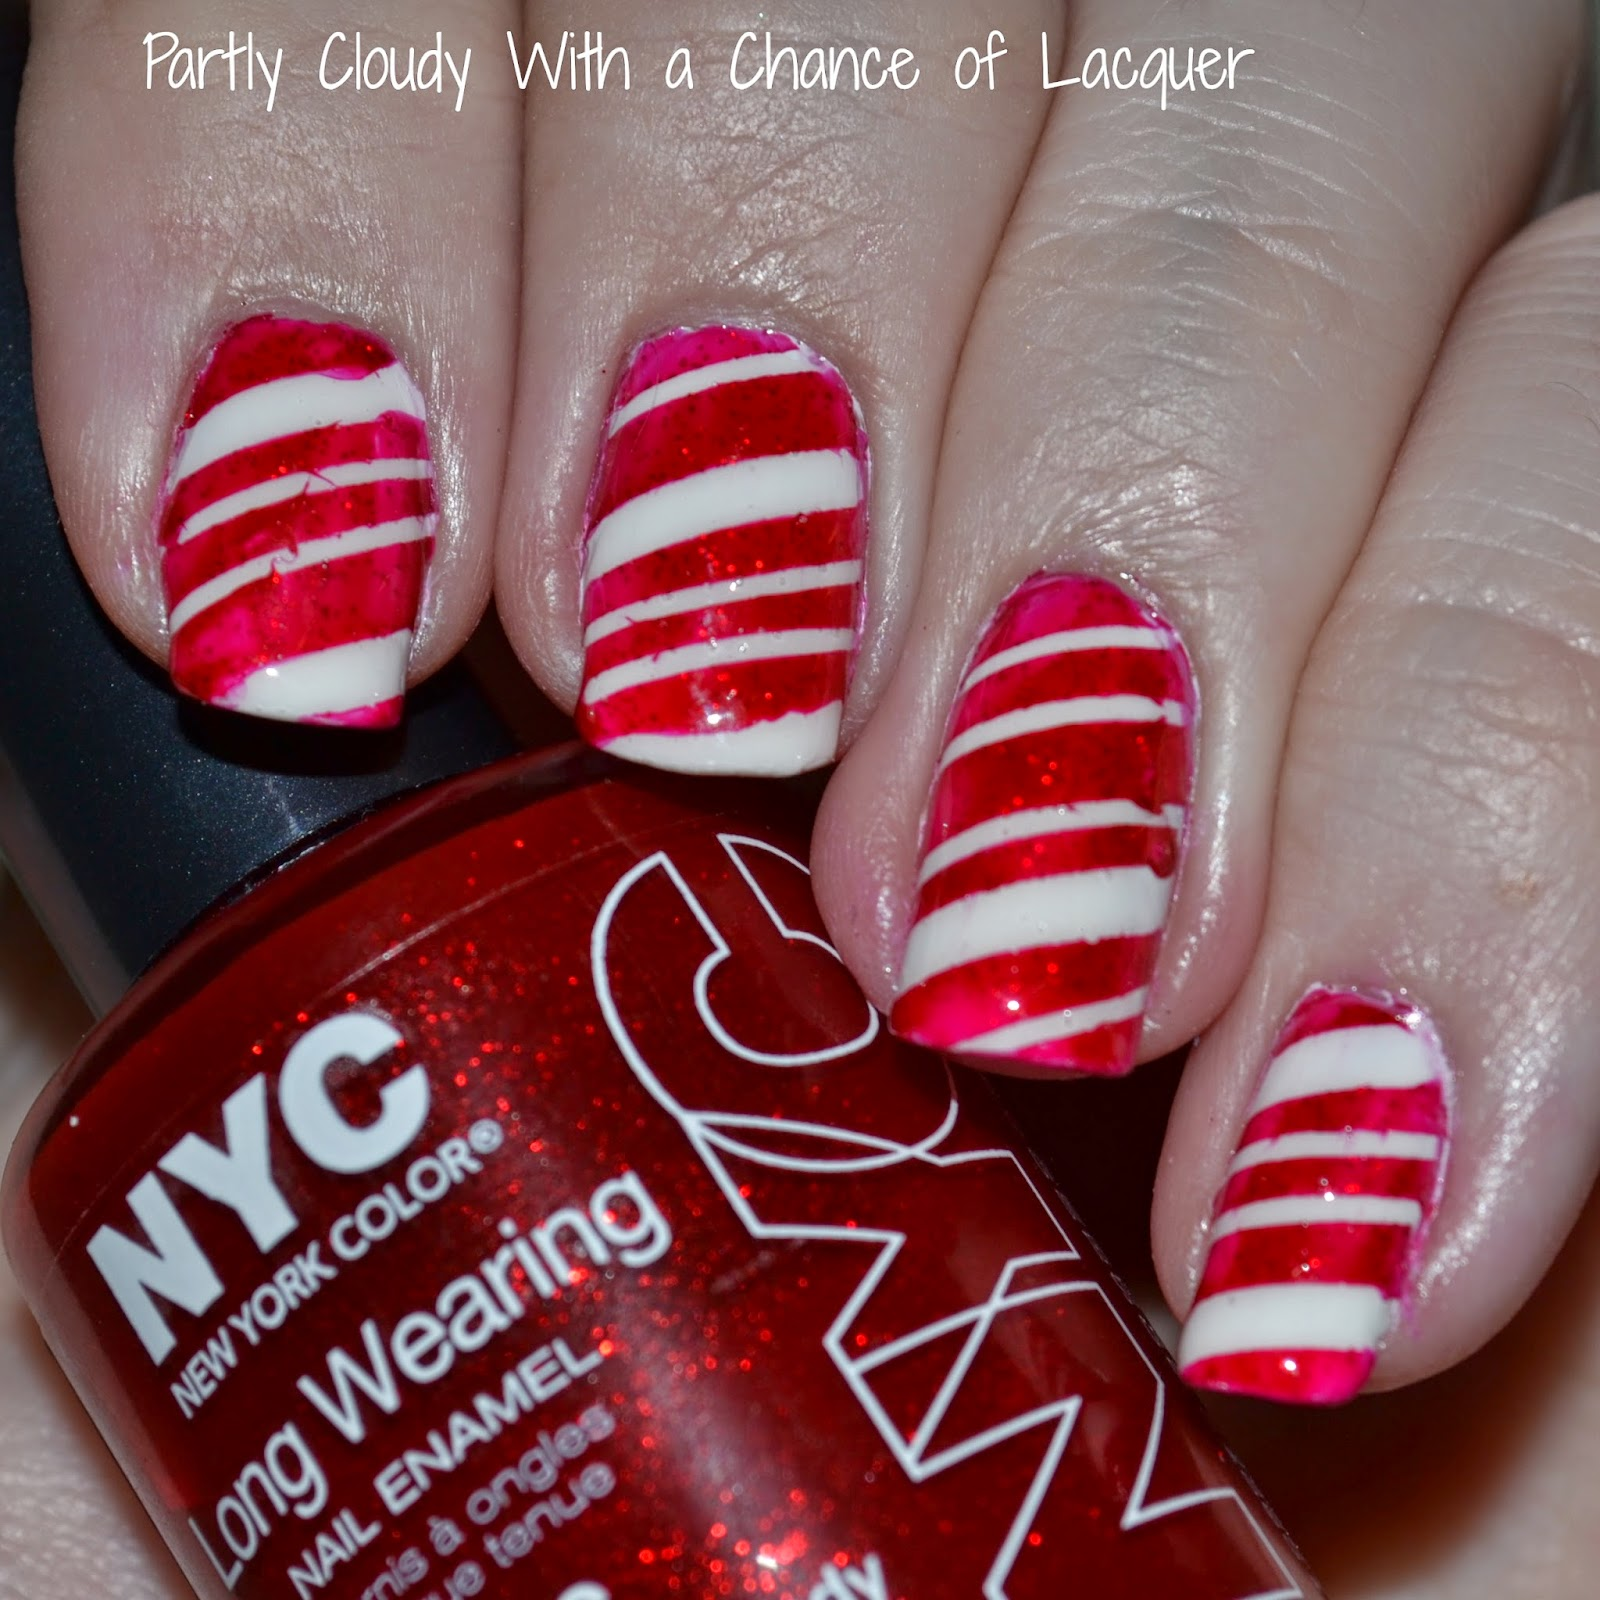 Candy Cane Nail Art Partly Cloudy With A Chance Of Lacquer